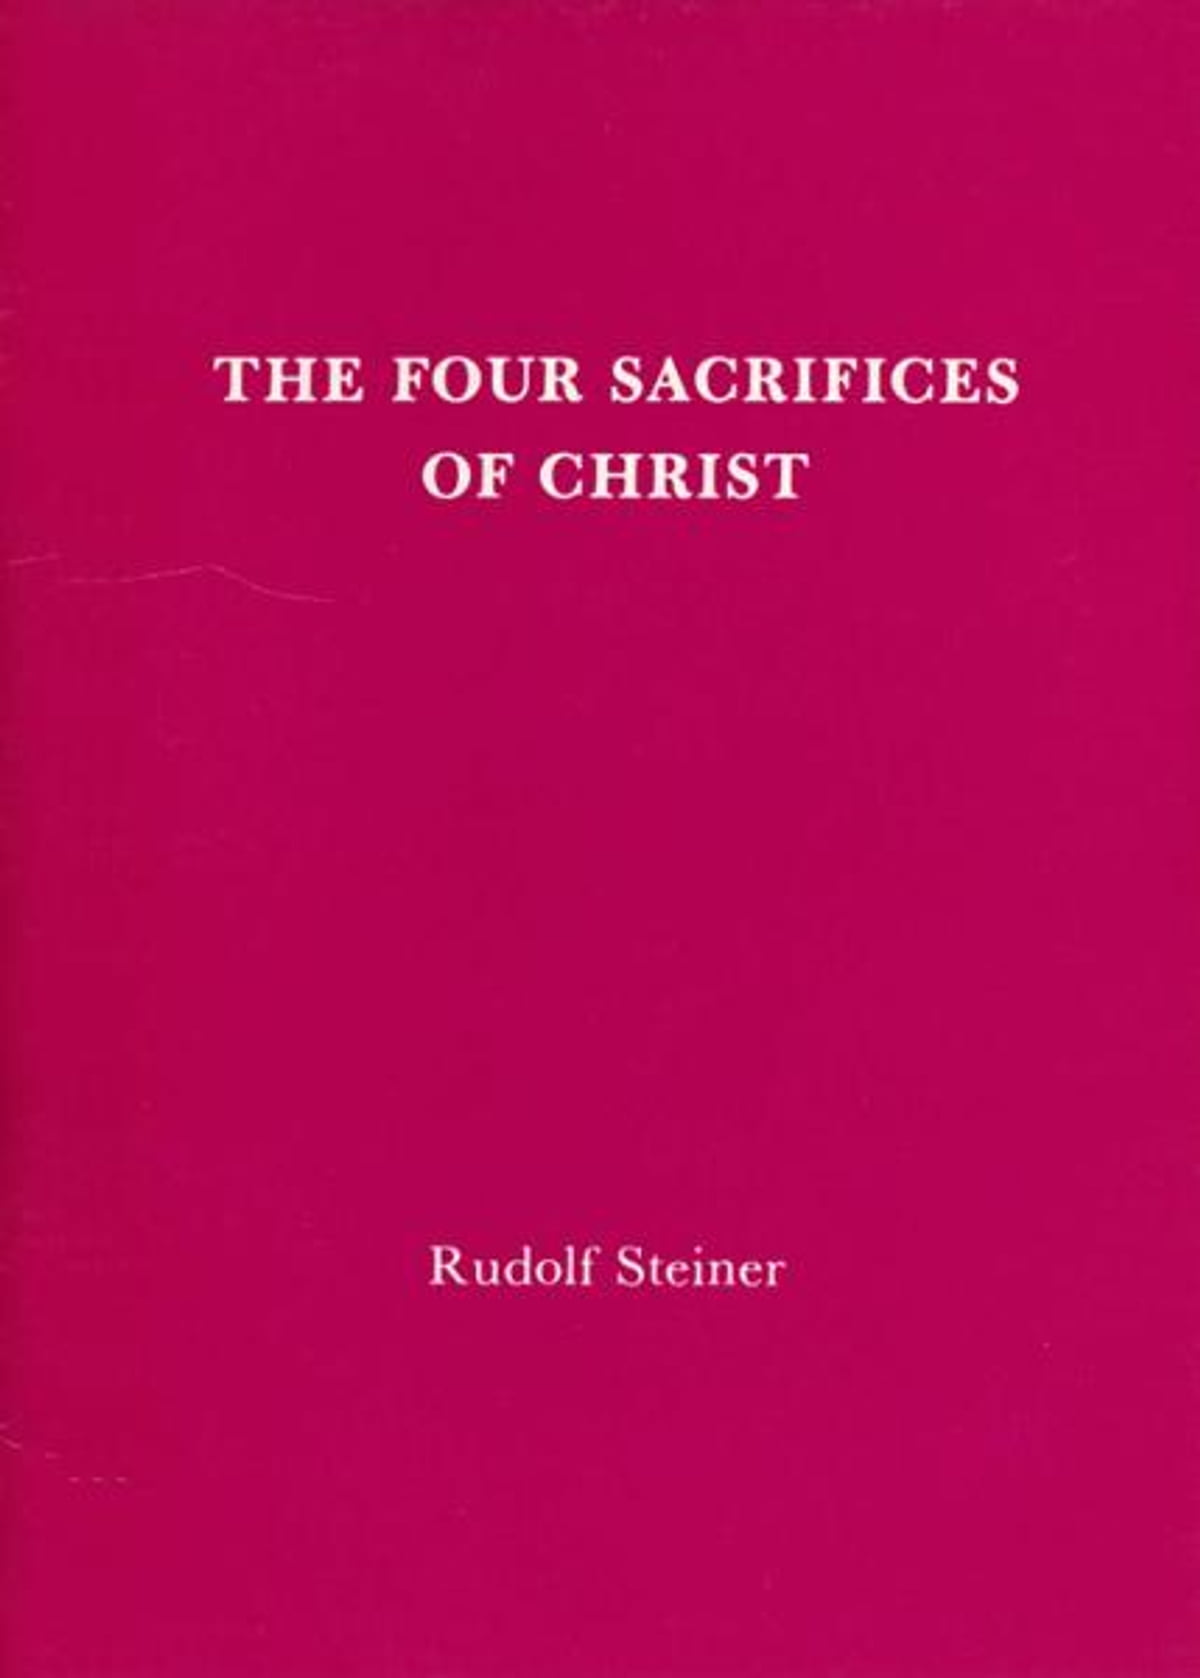 The Four Sacrifices of Christ eBook by Rudolf Steiner - 9780880108256 |  Rakuten Kobo